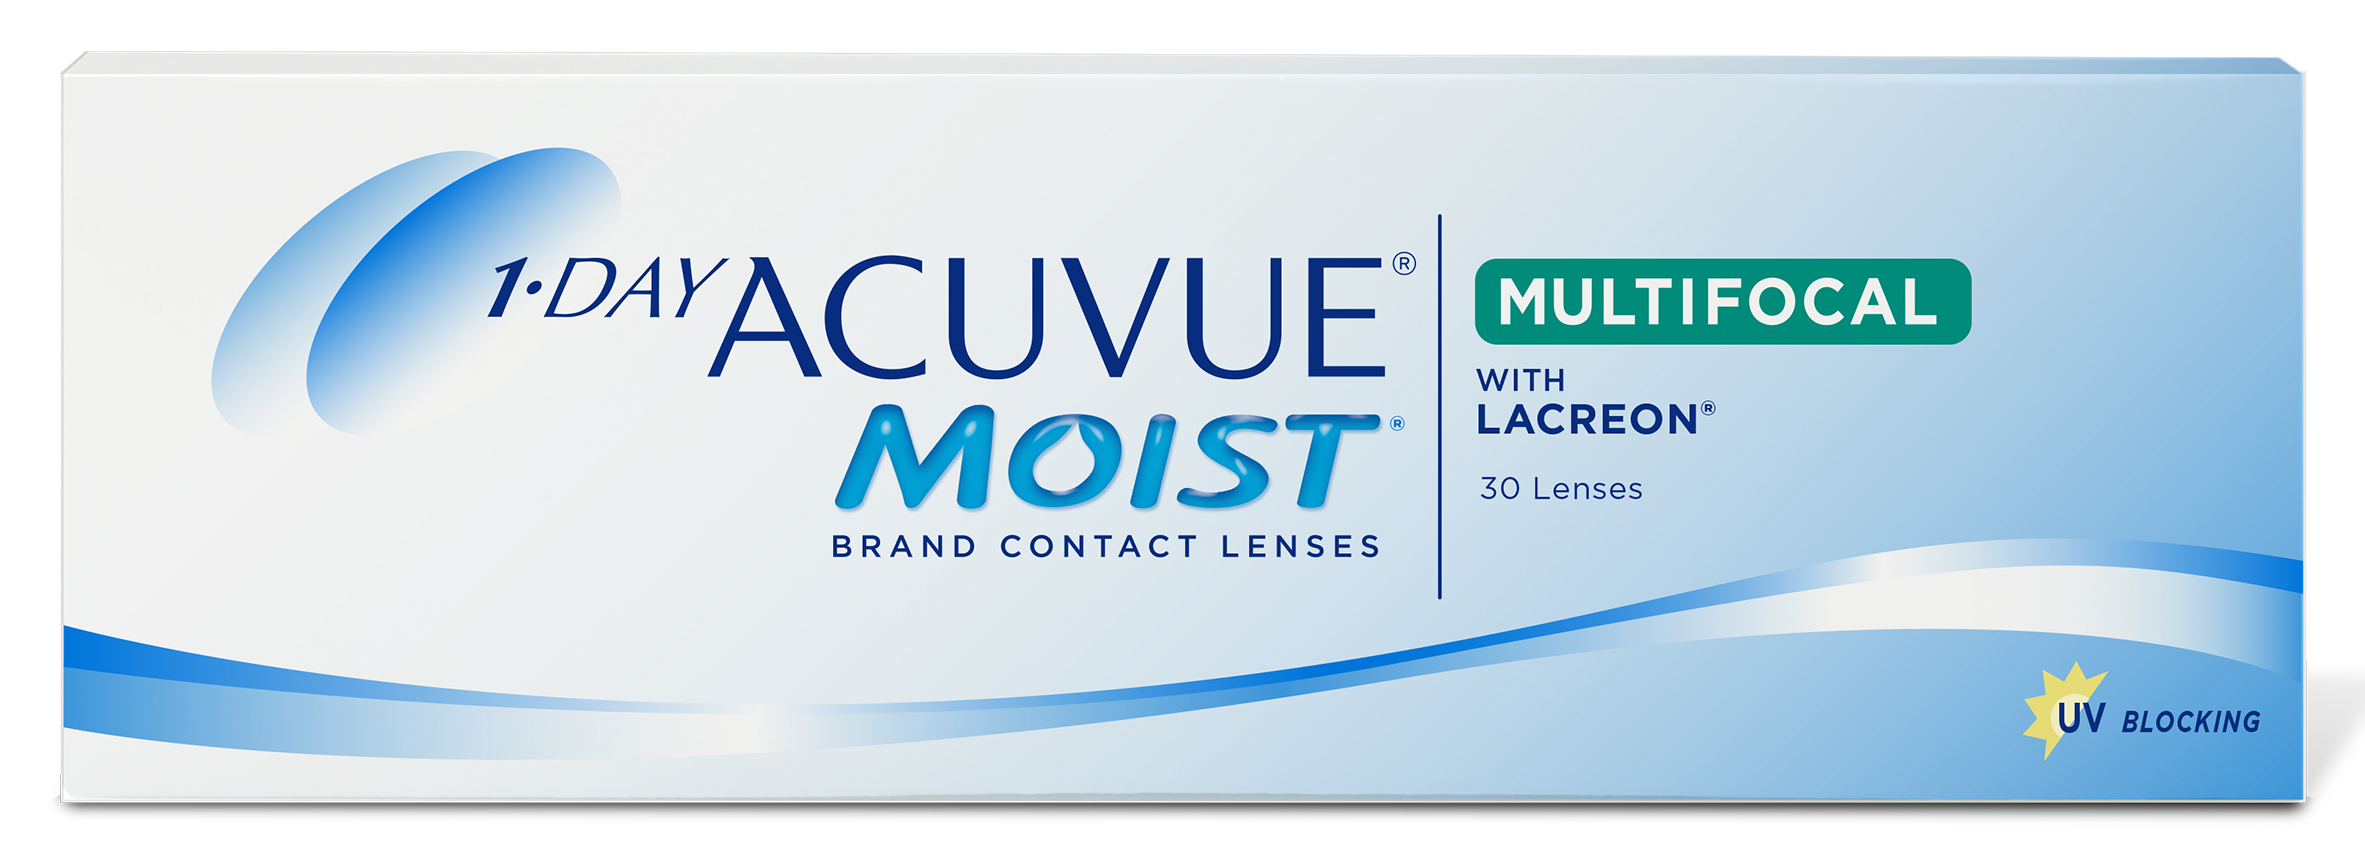 A pack of 1-Day ACUVUE® MOIST MULTIFOCAL contact lenses